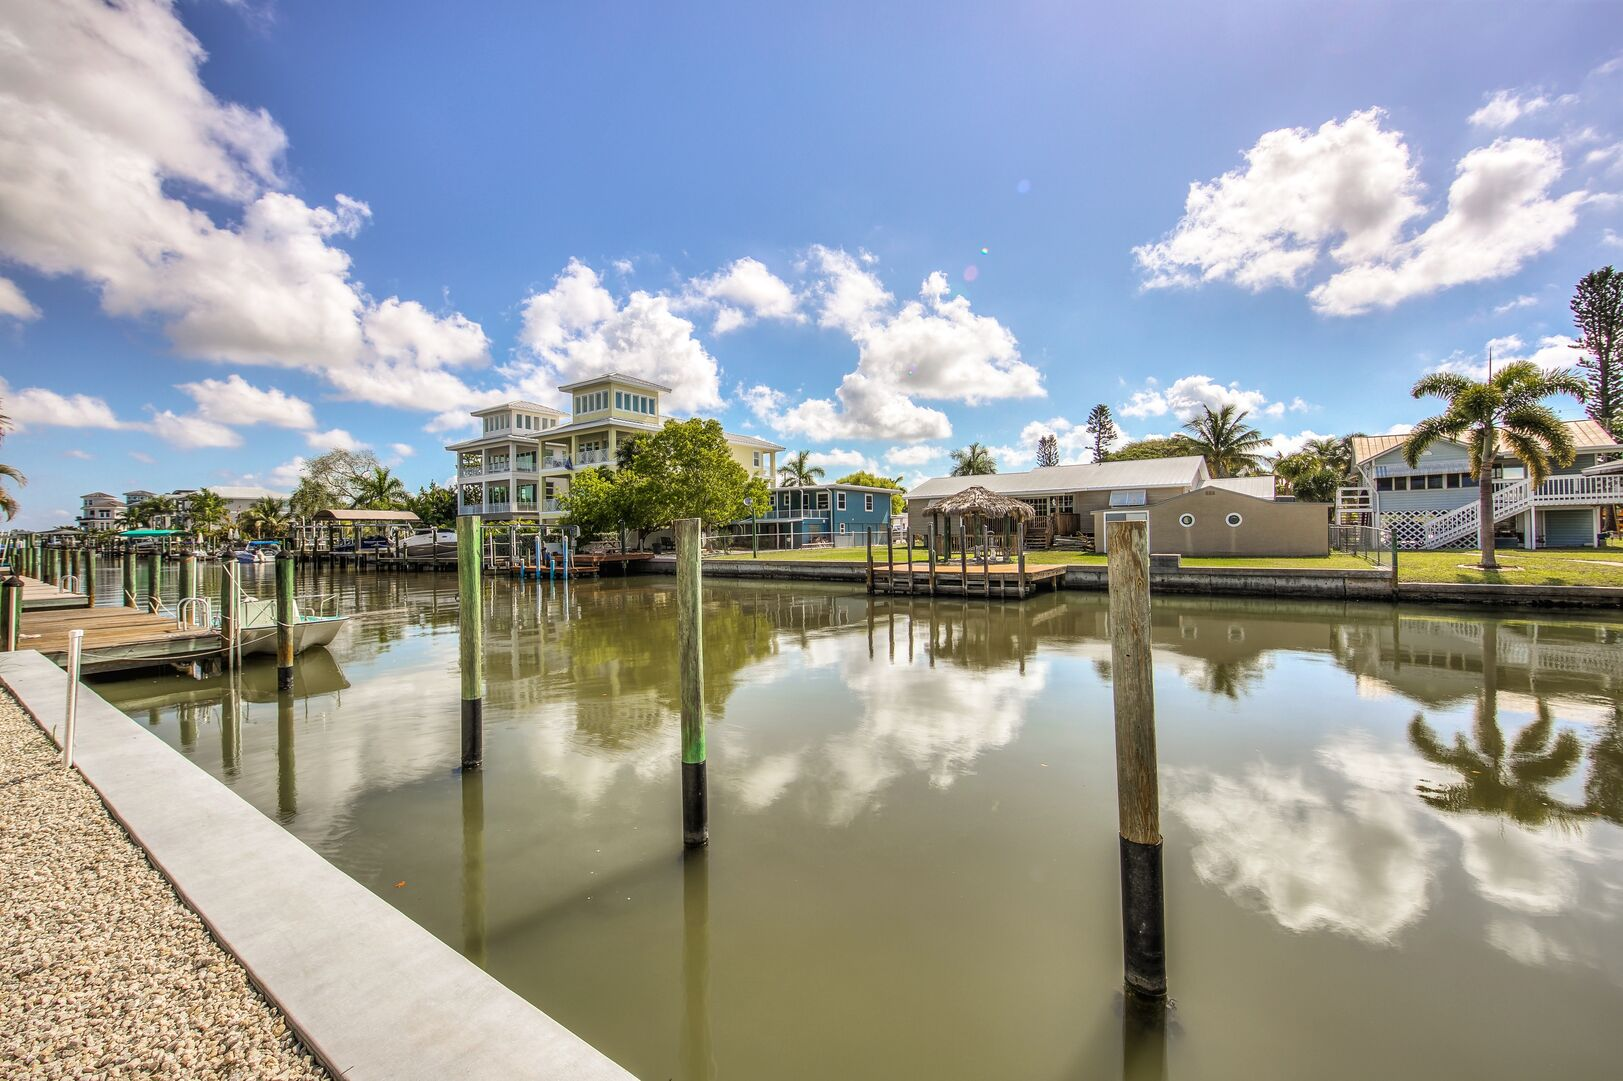 Dock at Vacation Home Rental In Fort Myers Beach Florida